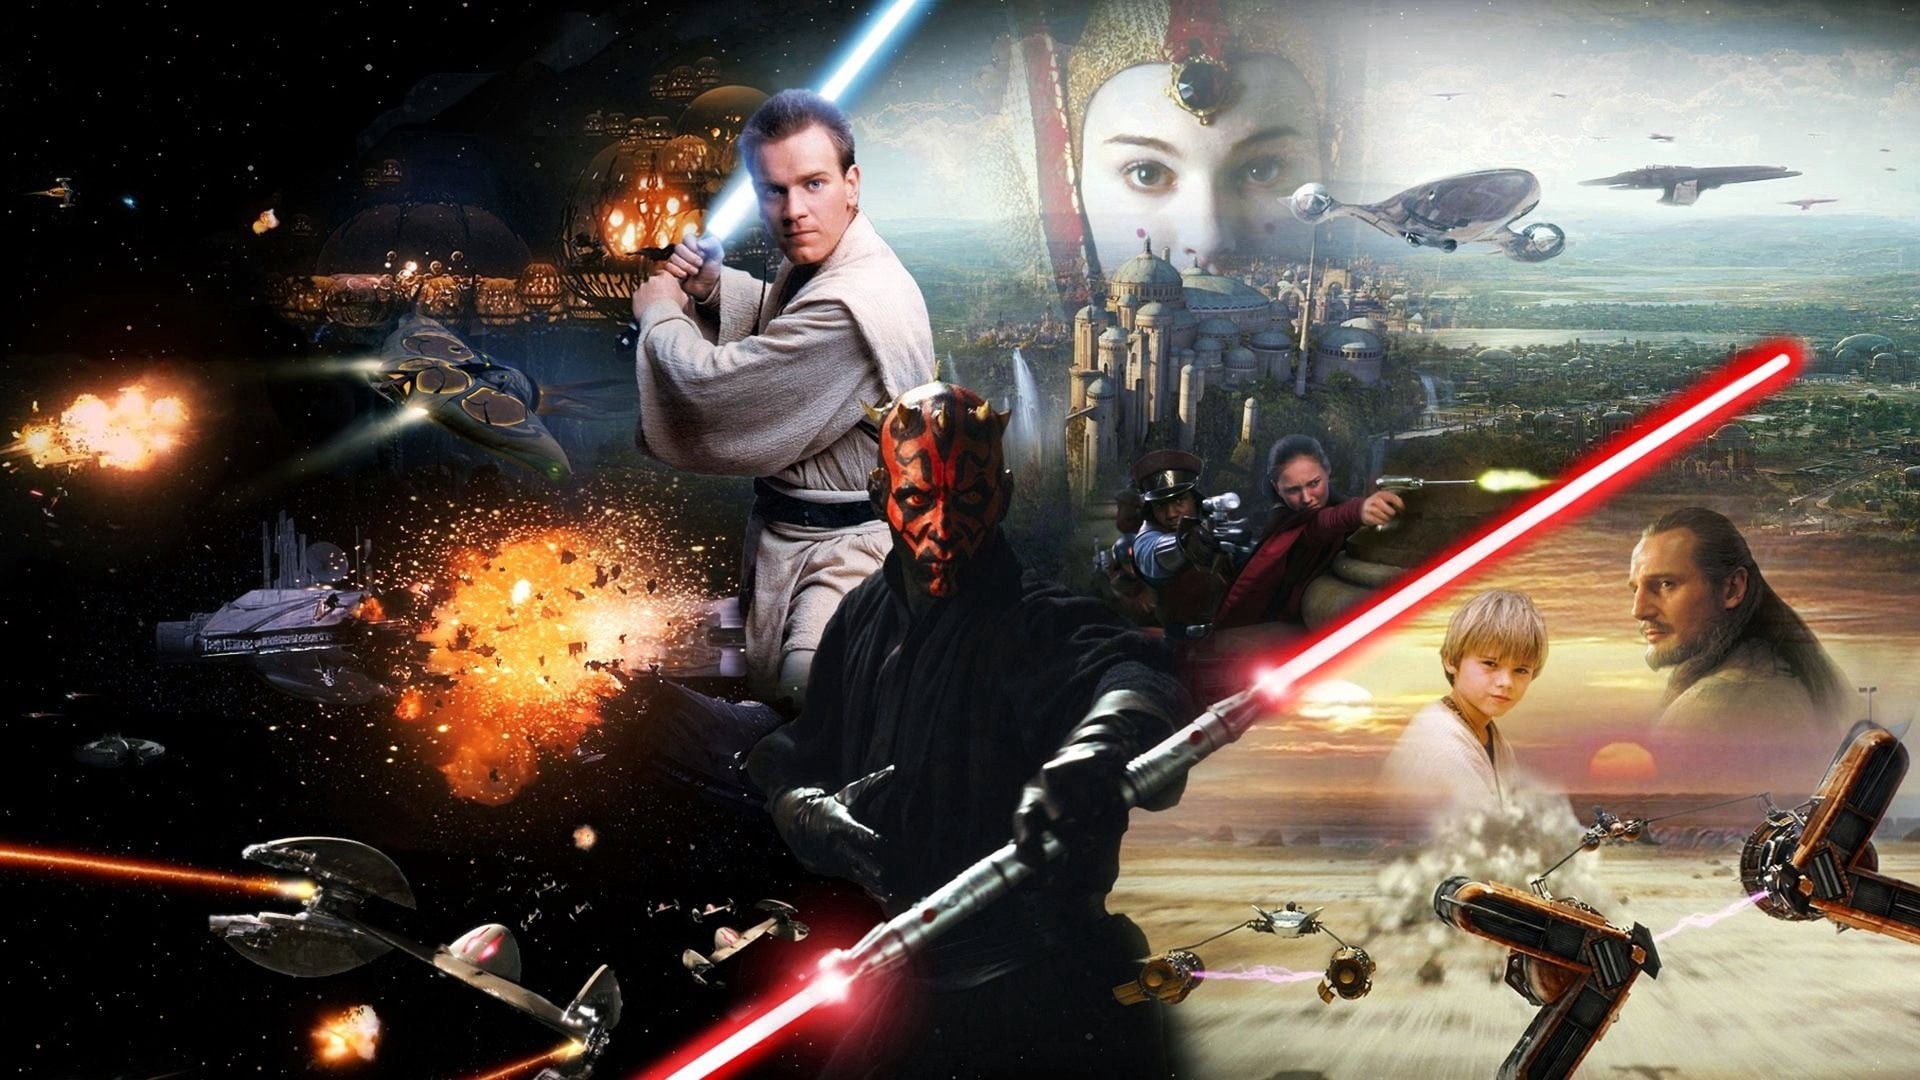 Full Watch Star Wars Episode I The Phantom Menace 1999 Movies Online 123movies By Vetri Angle Star Wars Episode I The Phantom Menace 1999full Movie Jun 2020 Medium